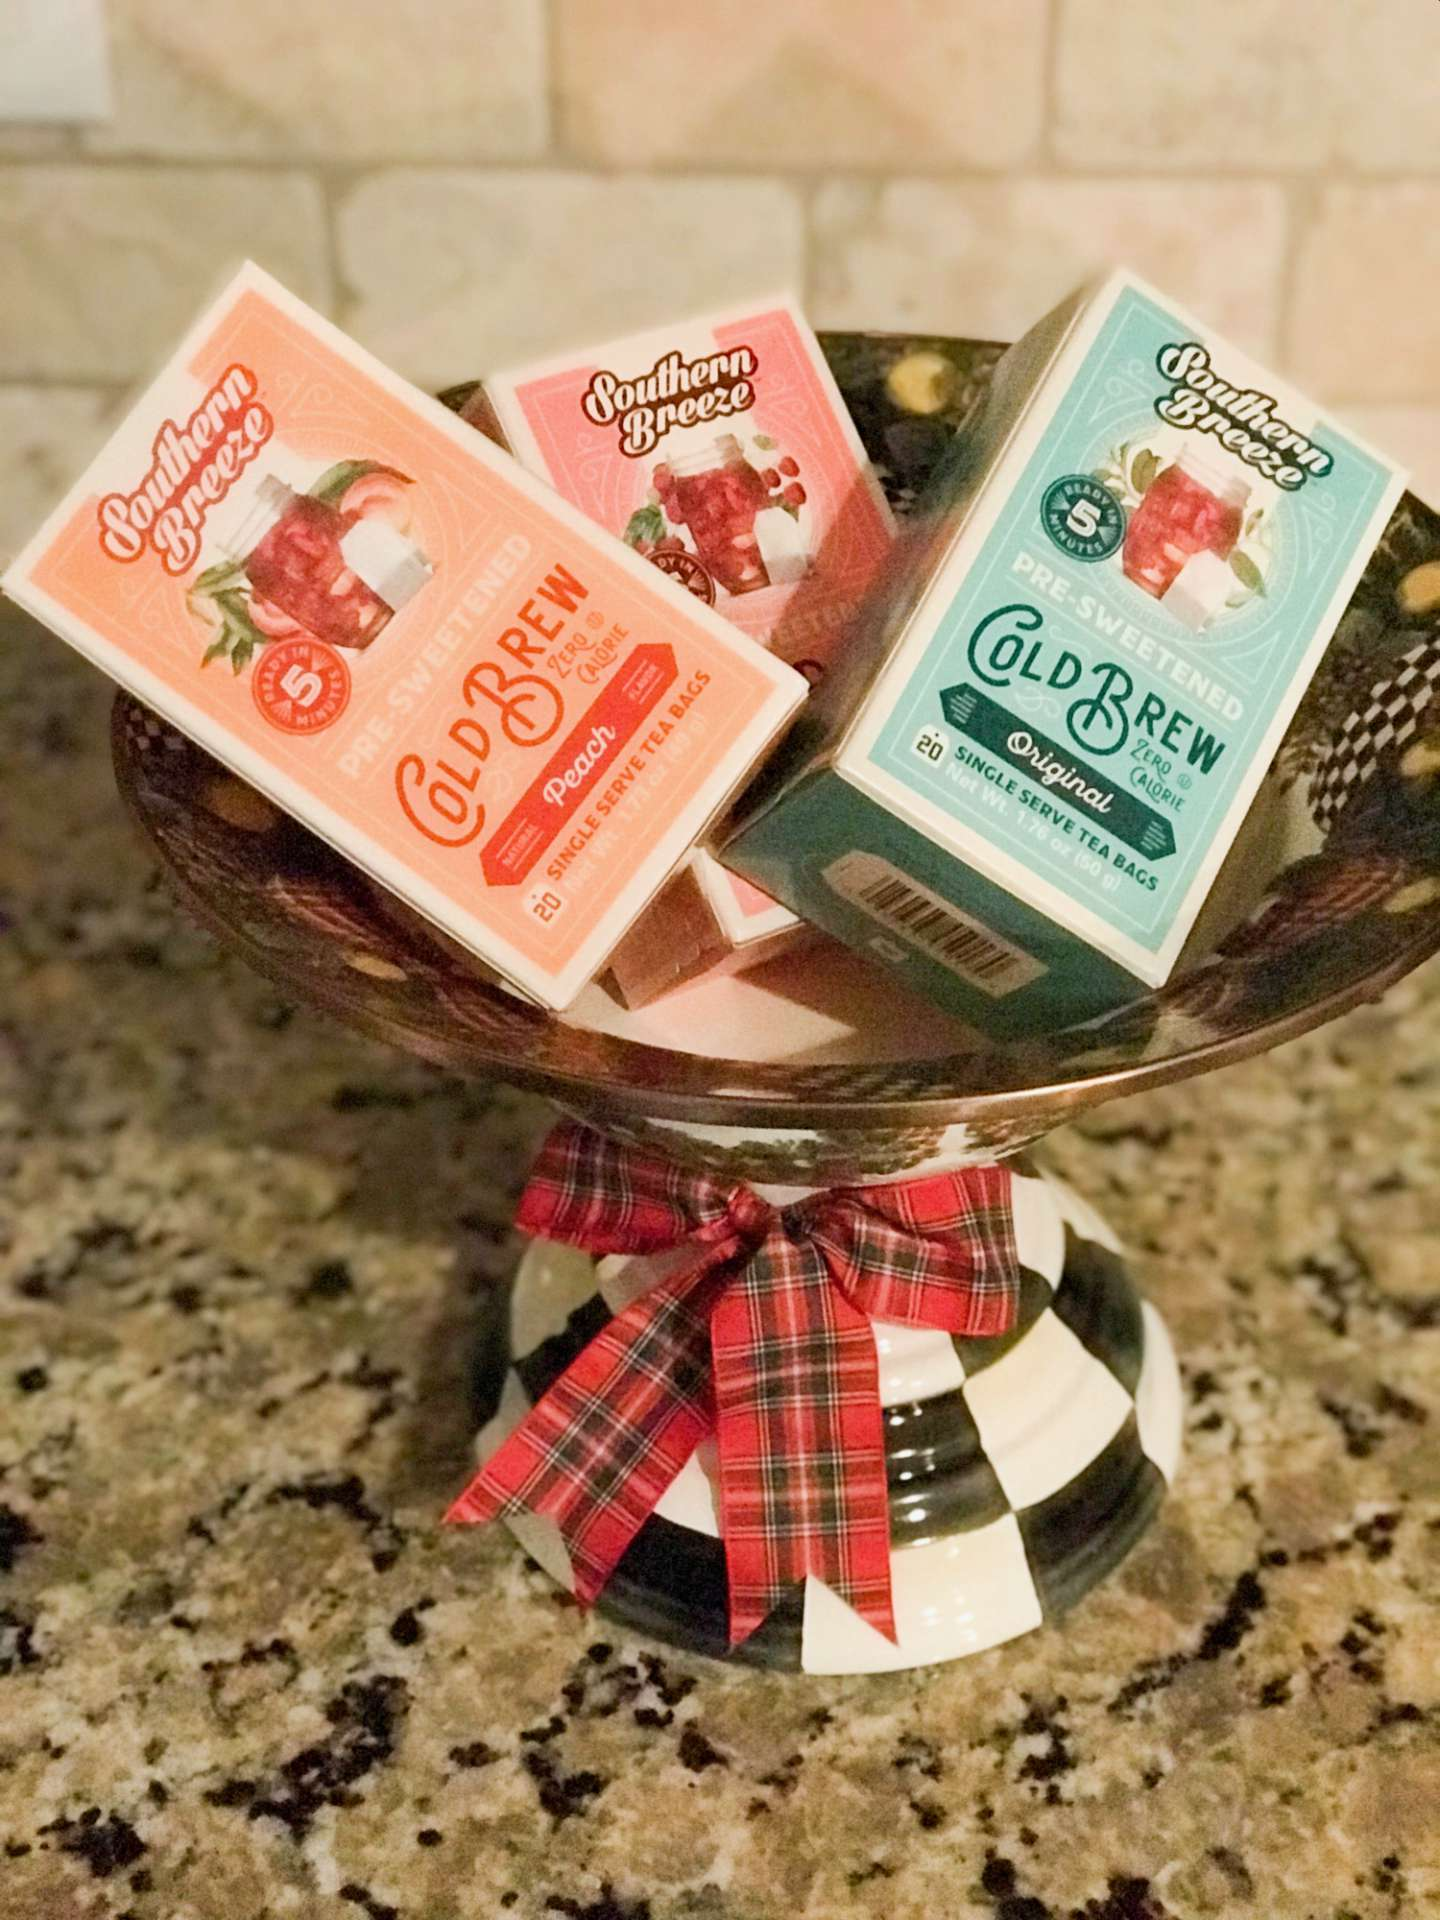 Cranberry Citrus Tea Featuring Southern Breeze Cold Brew - I'm Fixin' To - @mbg0112